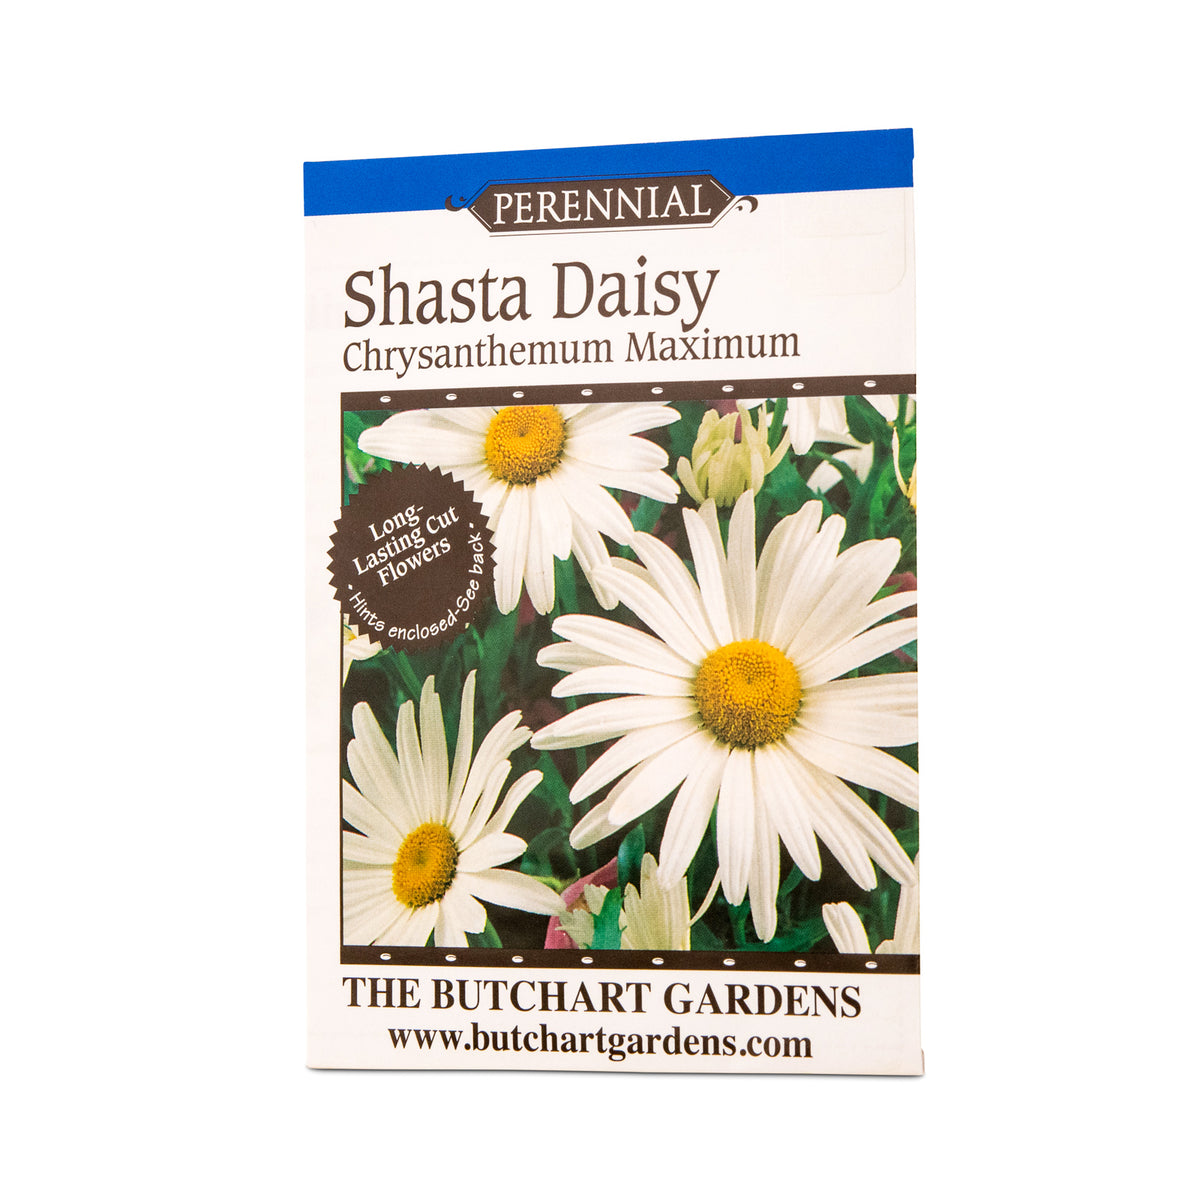 Seed shasta daisy the butchart gardens seed gift store perennial shastas are unrivaled for production of strong stemmed flowers during summer and early fall the daisy like flowers have snow white petals izmirmasajfo